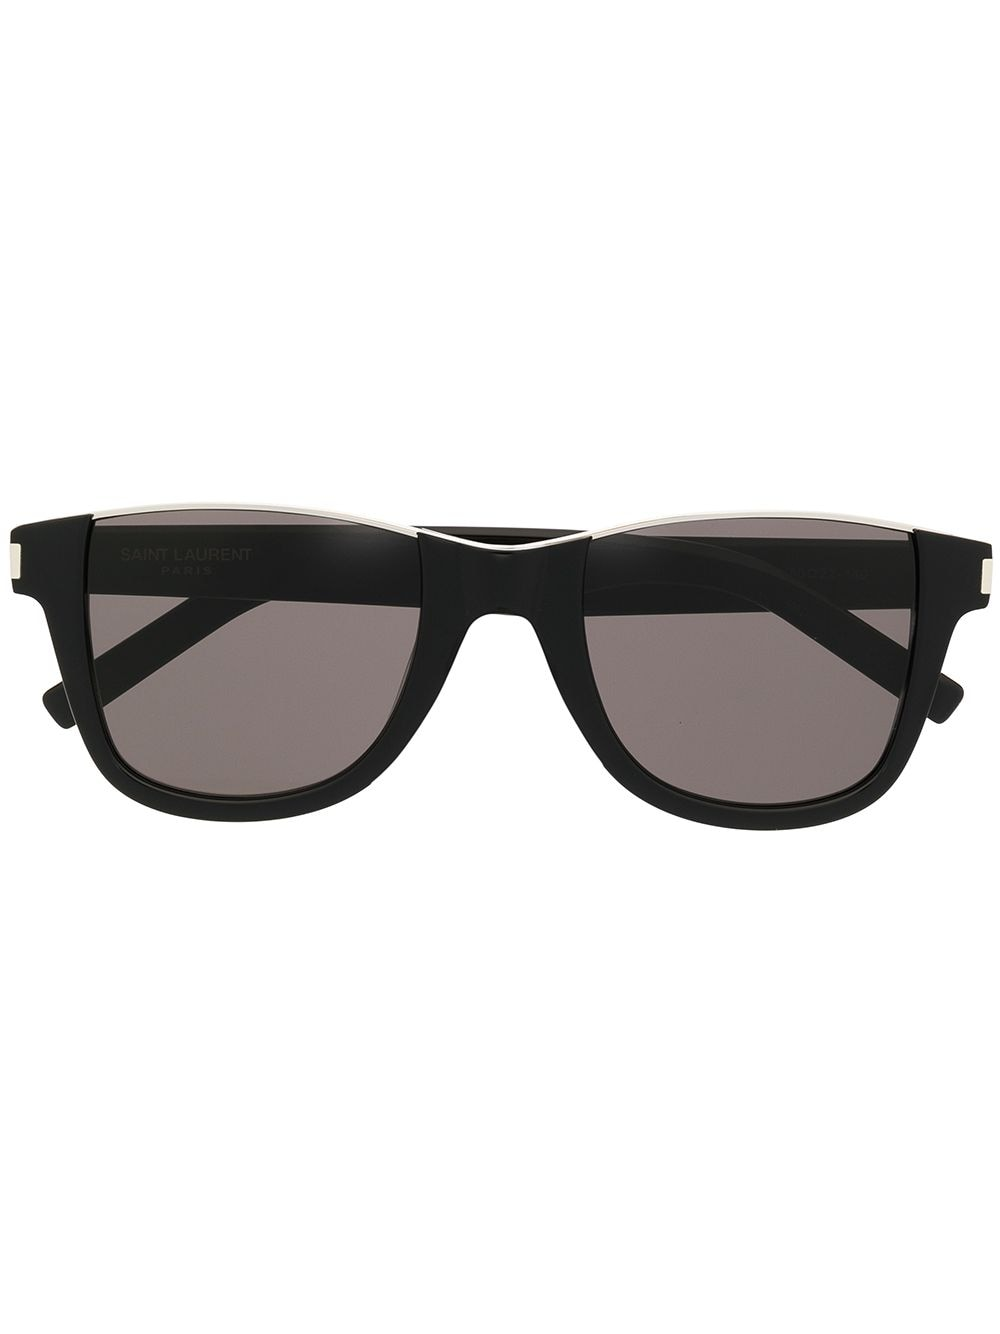 Sl51 Sunglasses